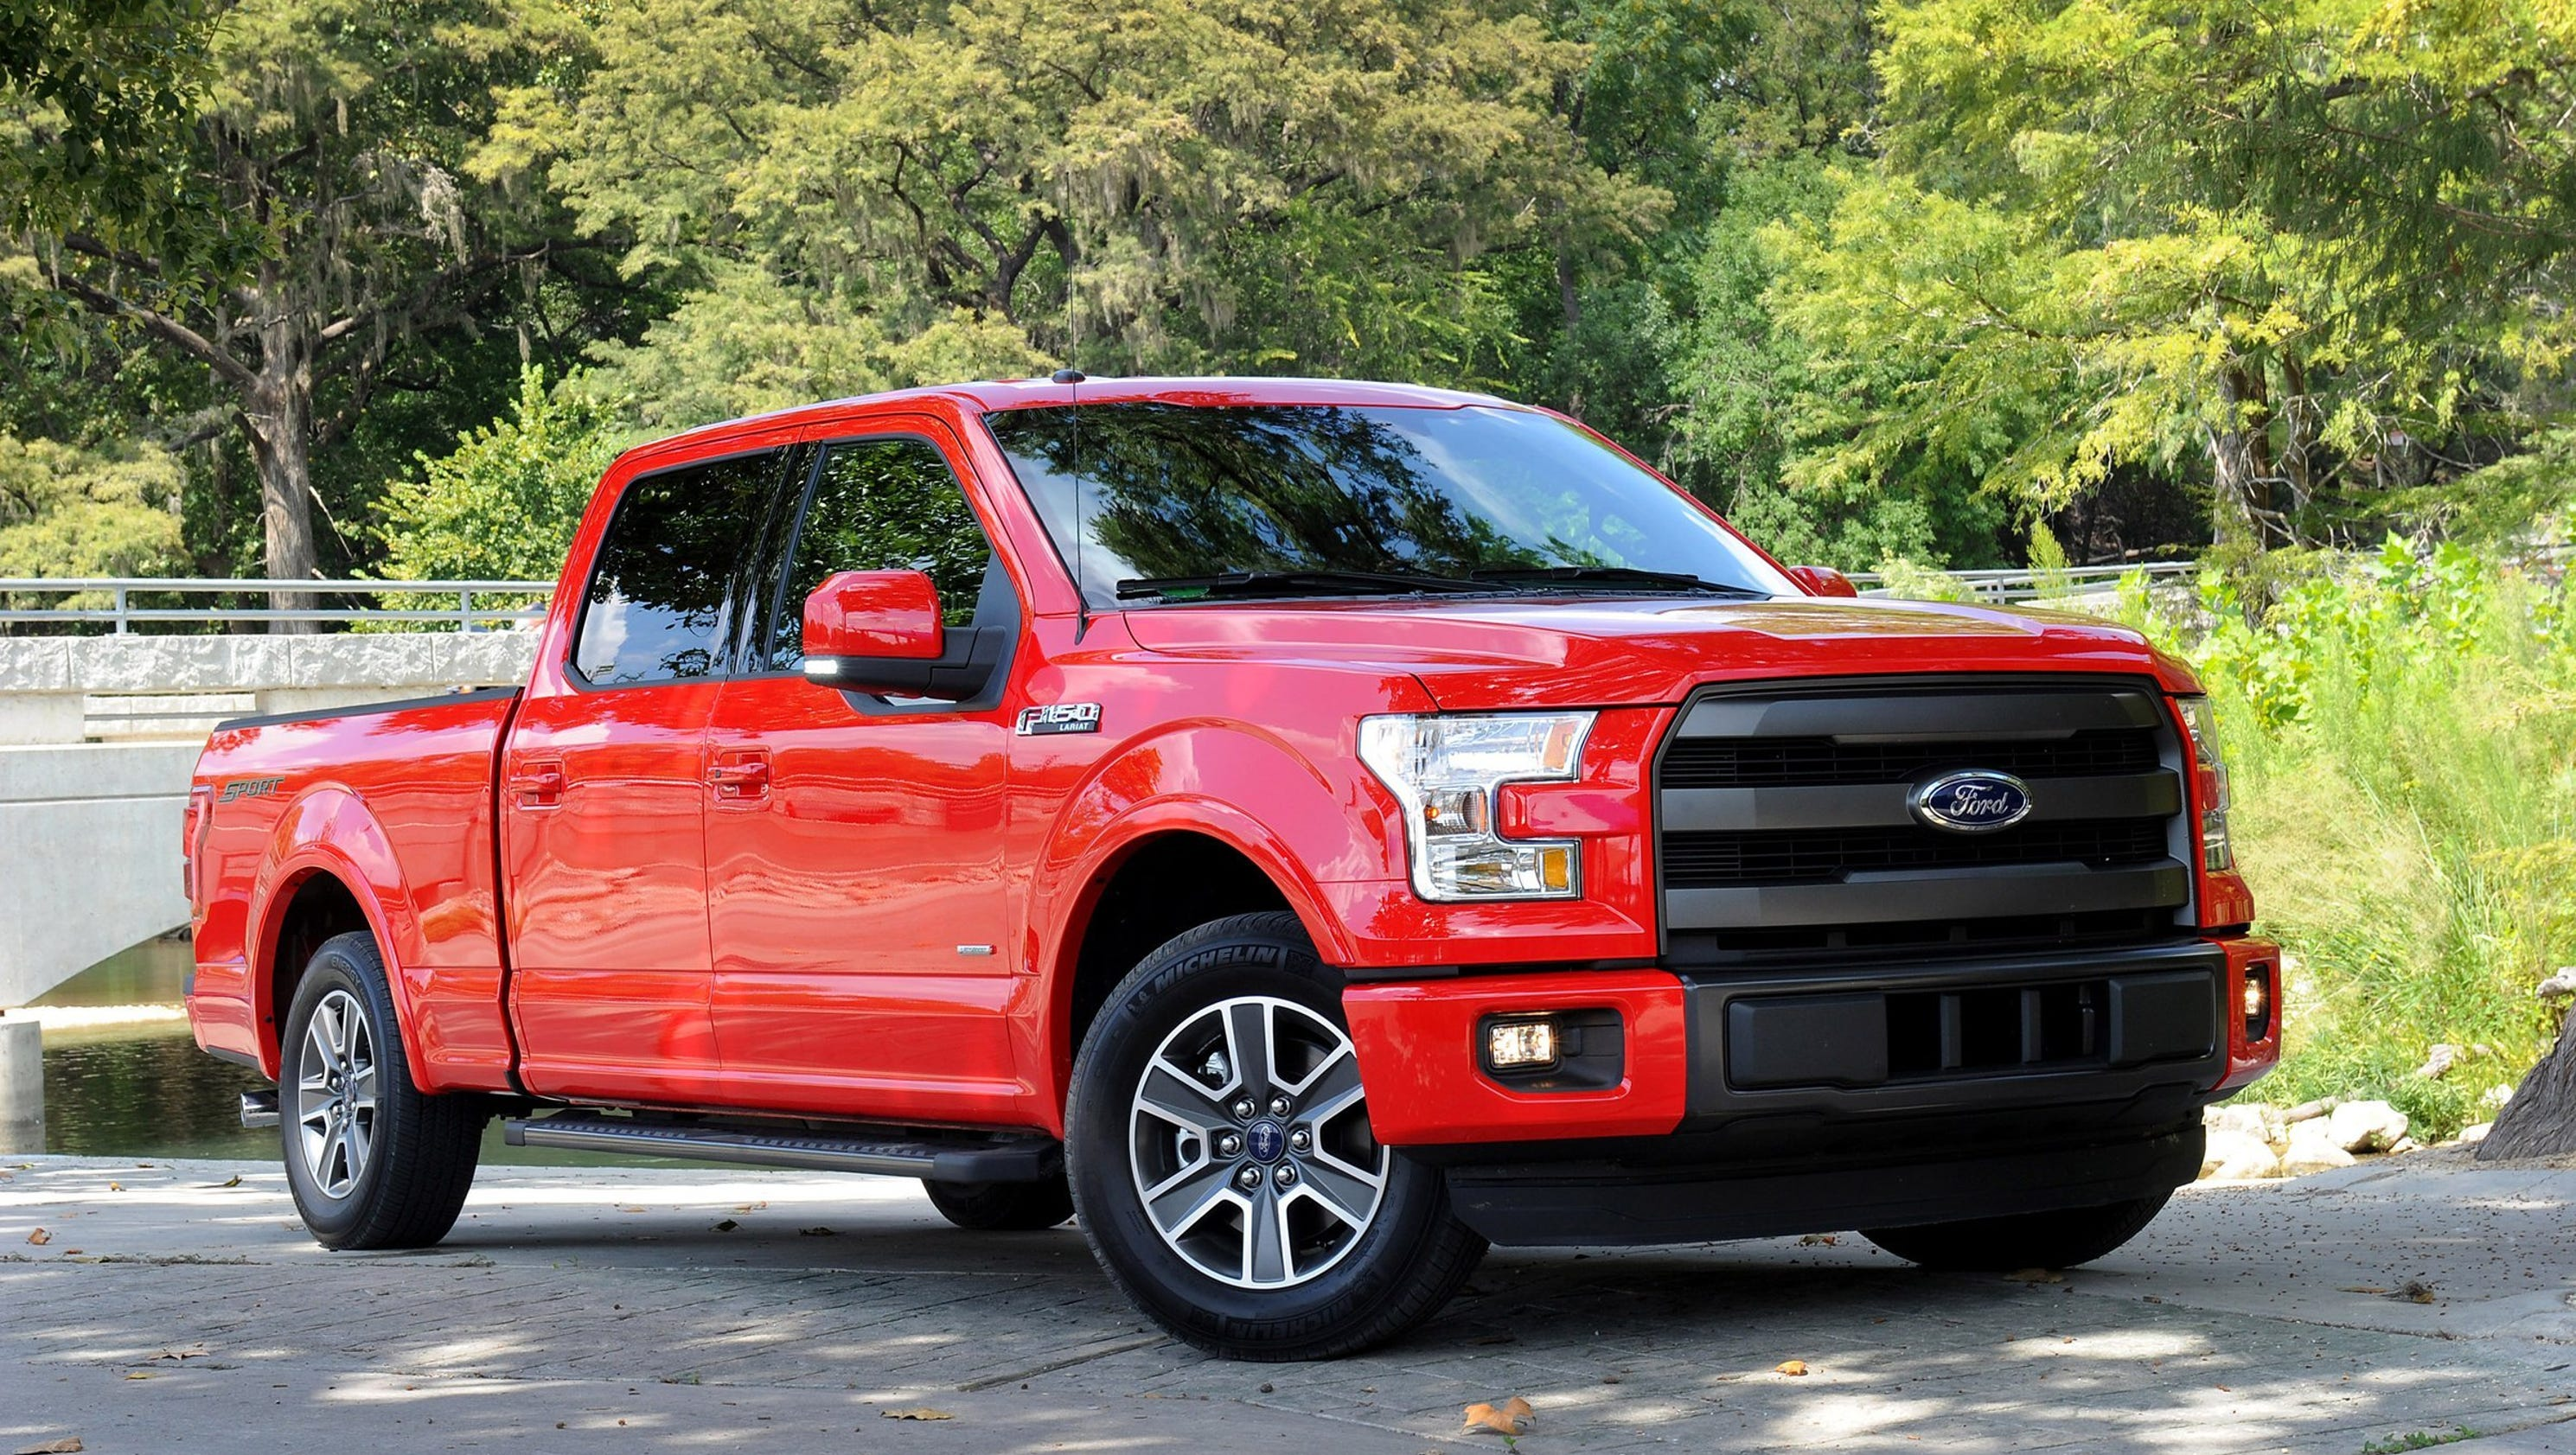 in winter f road test worth reviews by roading tested conditions proves while the ford seemed unfazed we dsc its driving off it